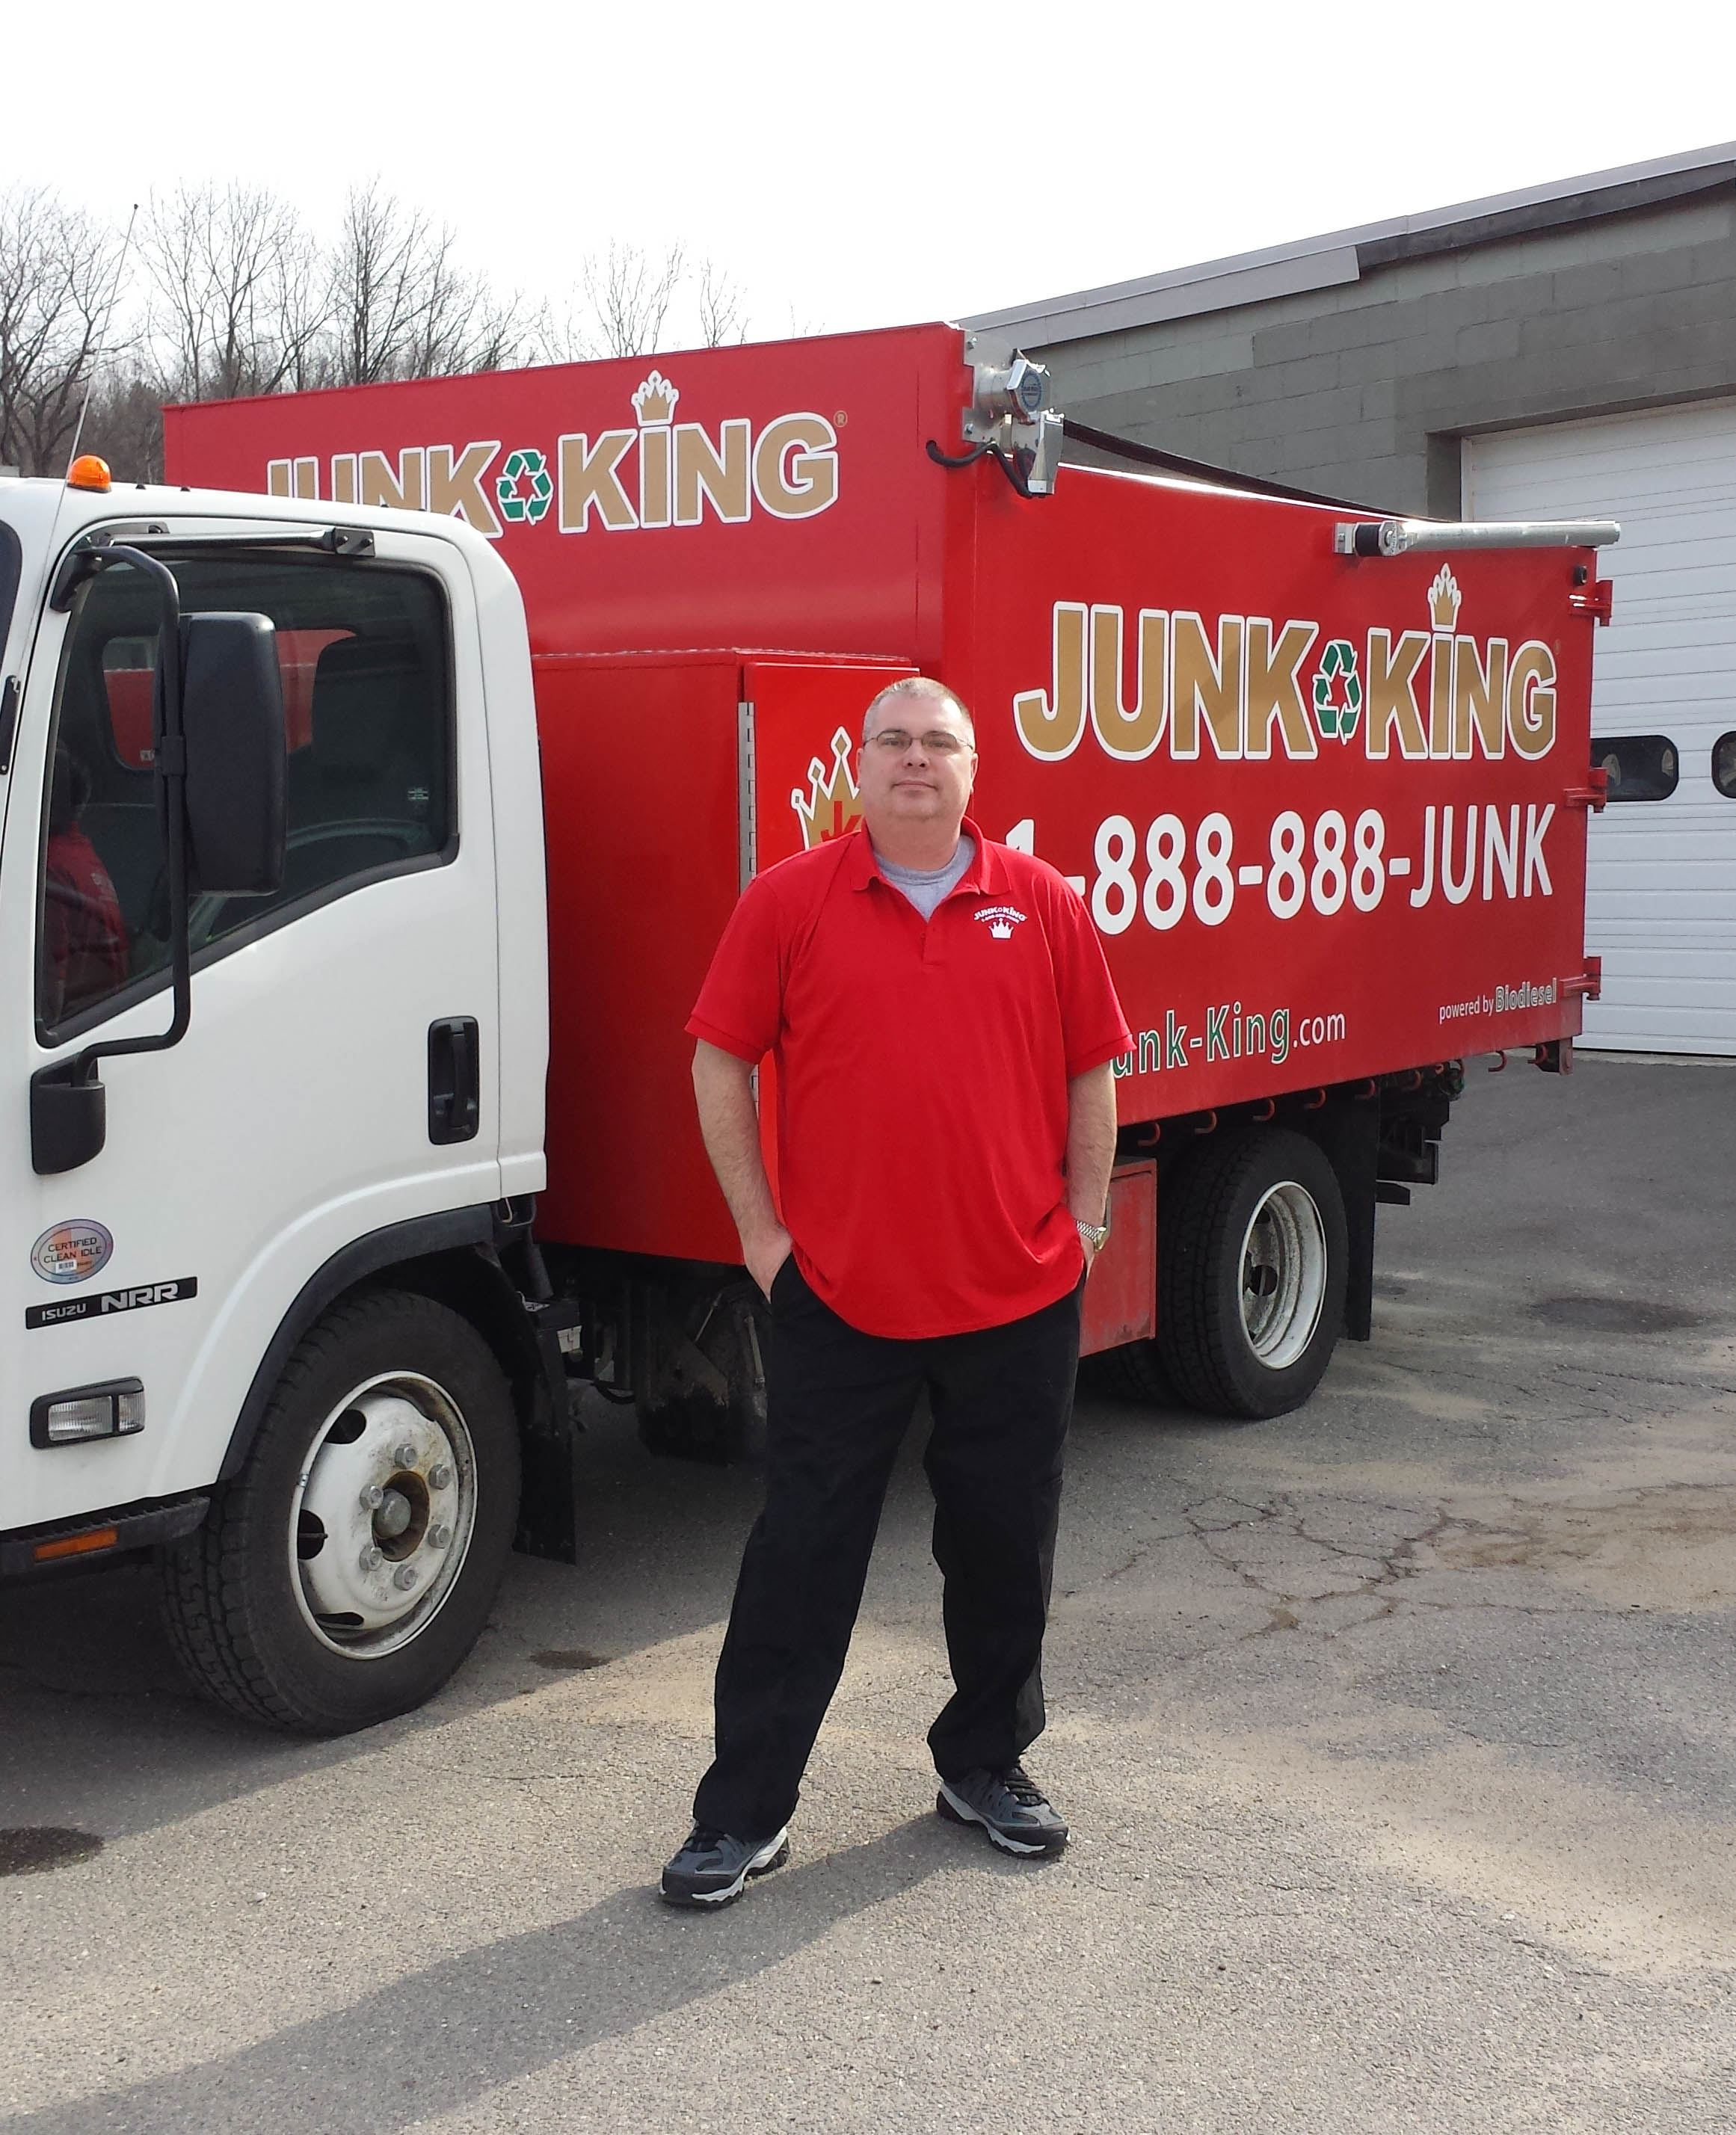 Junk King Franchise Owner,  Tom Indge.